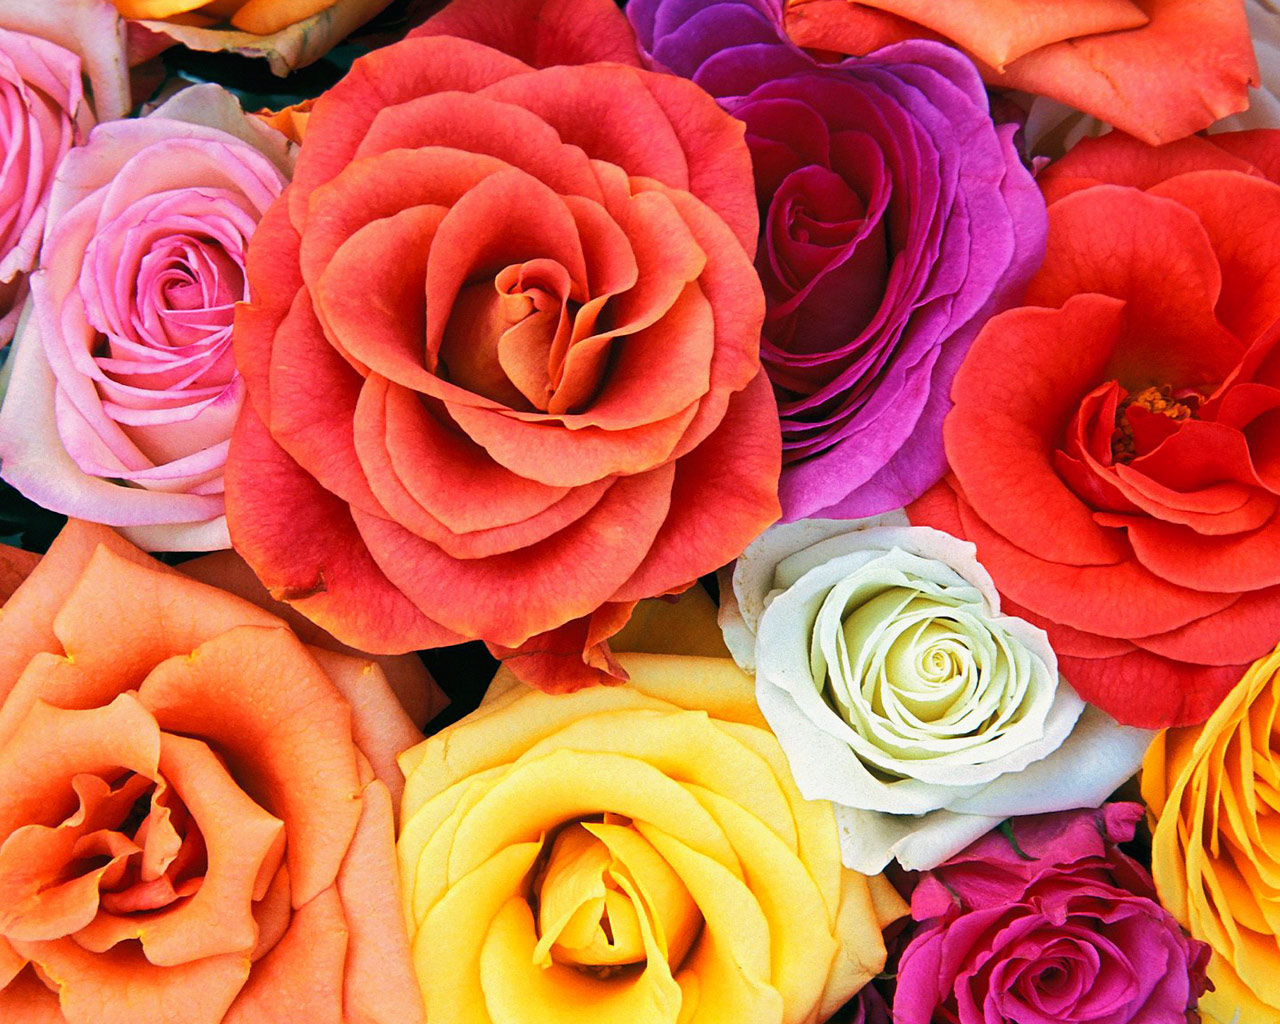 18 of our favorite flowers our blog 4 rose izmirmasajfo